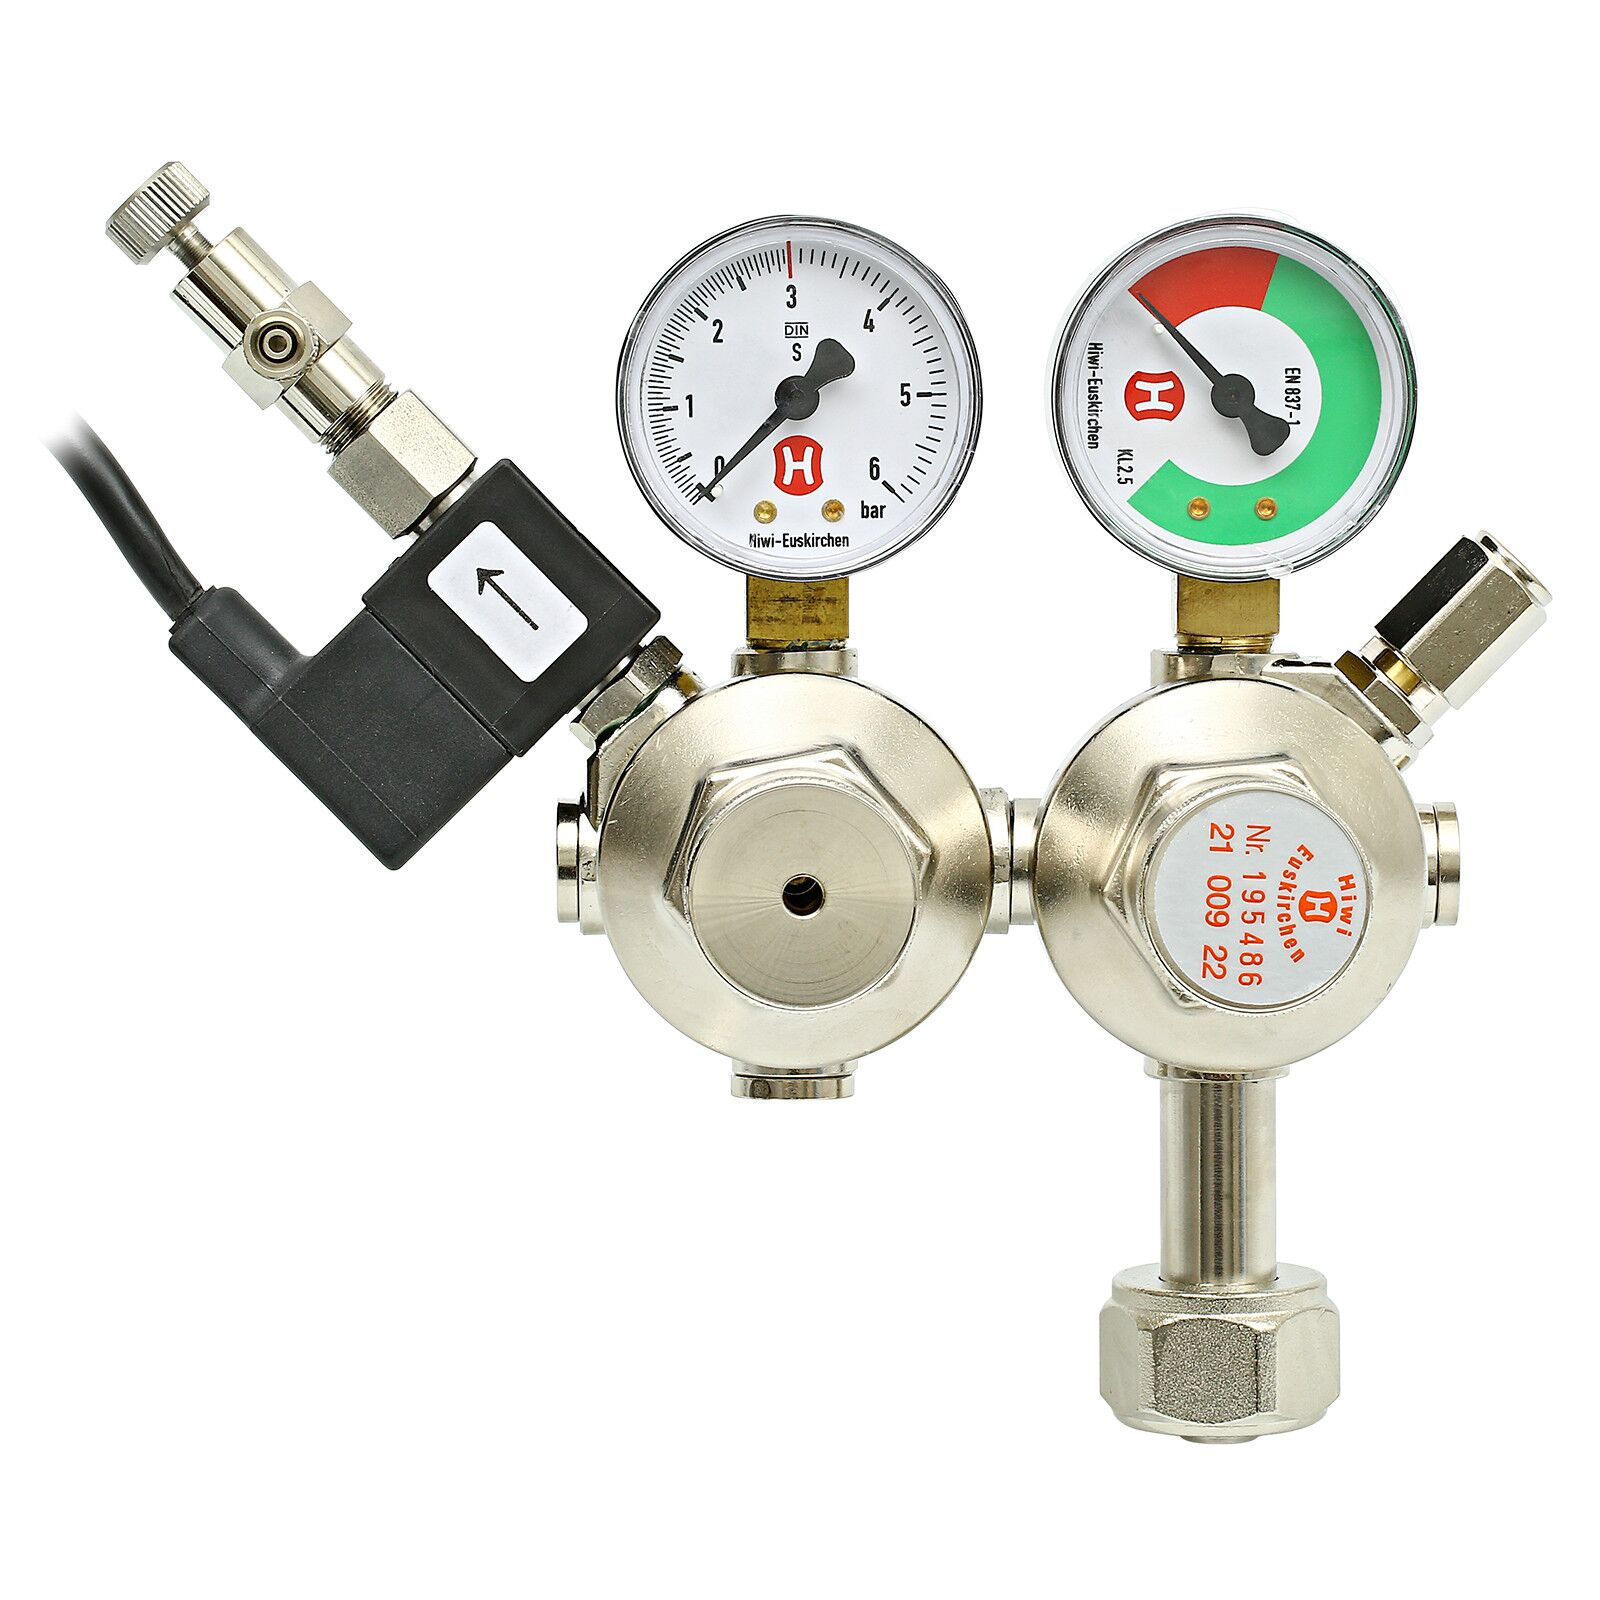 Hiwi - Double stage Pressure regulator + SV & CV